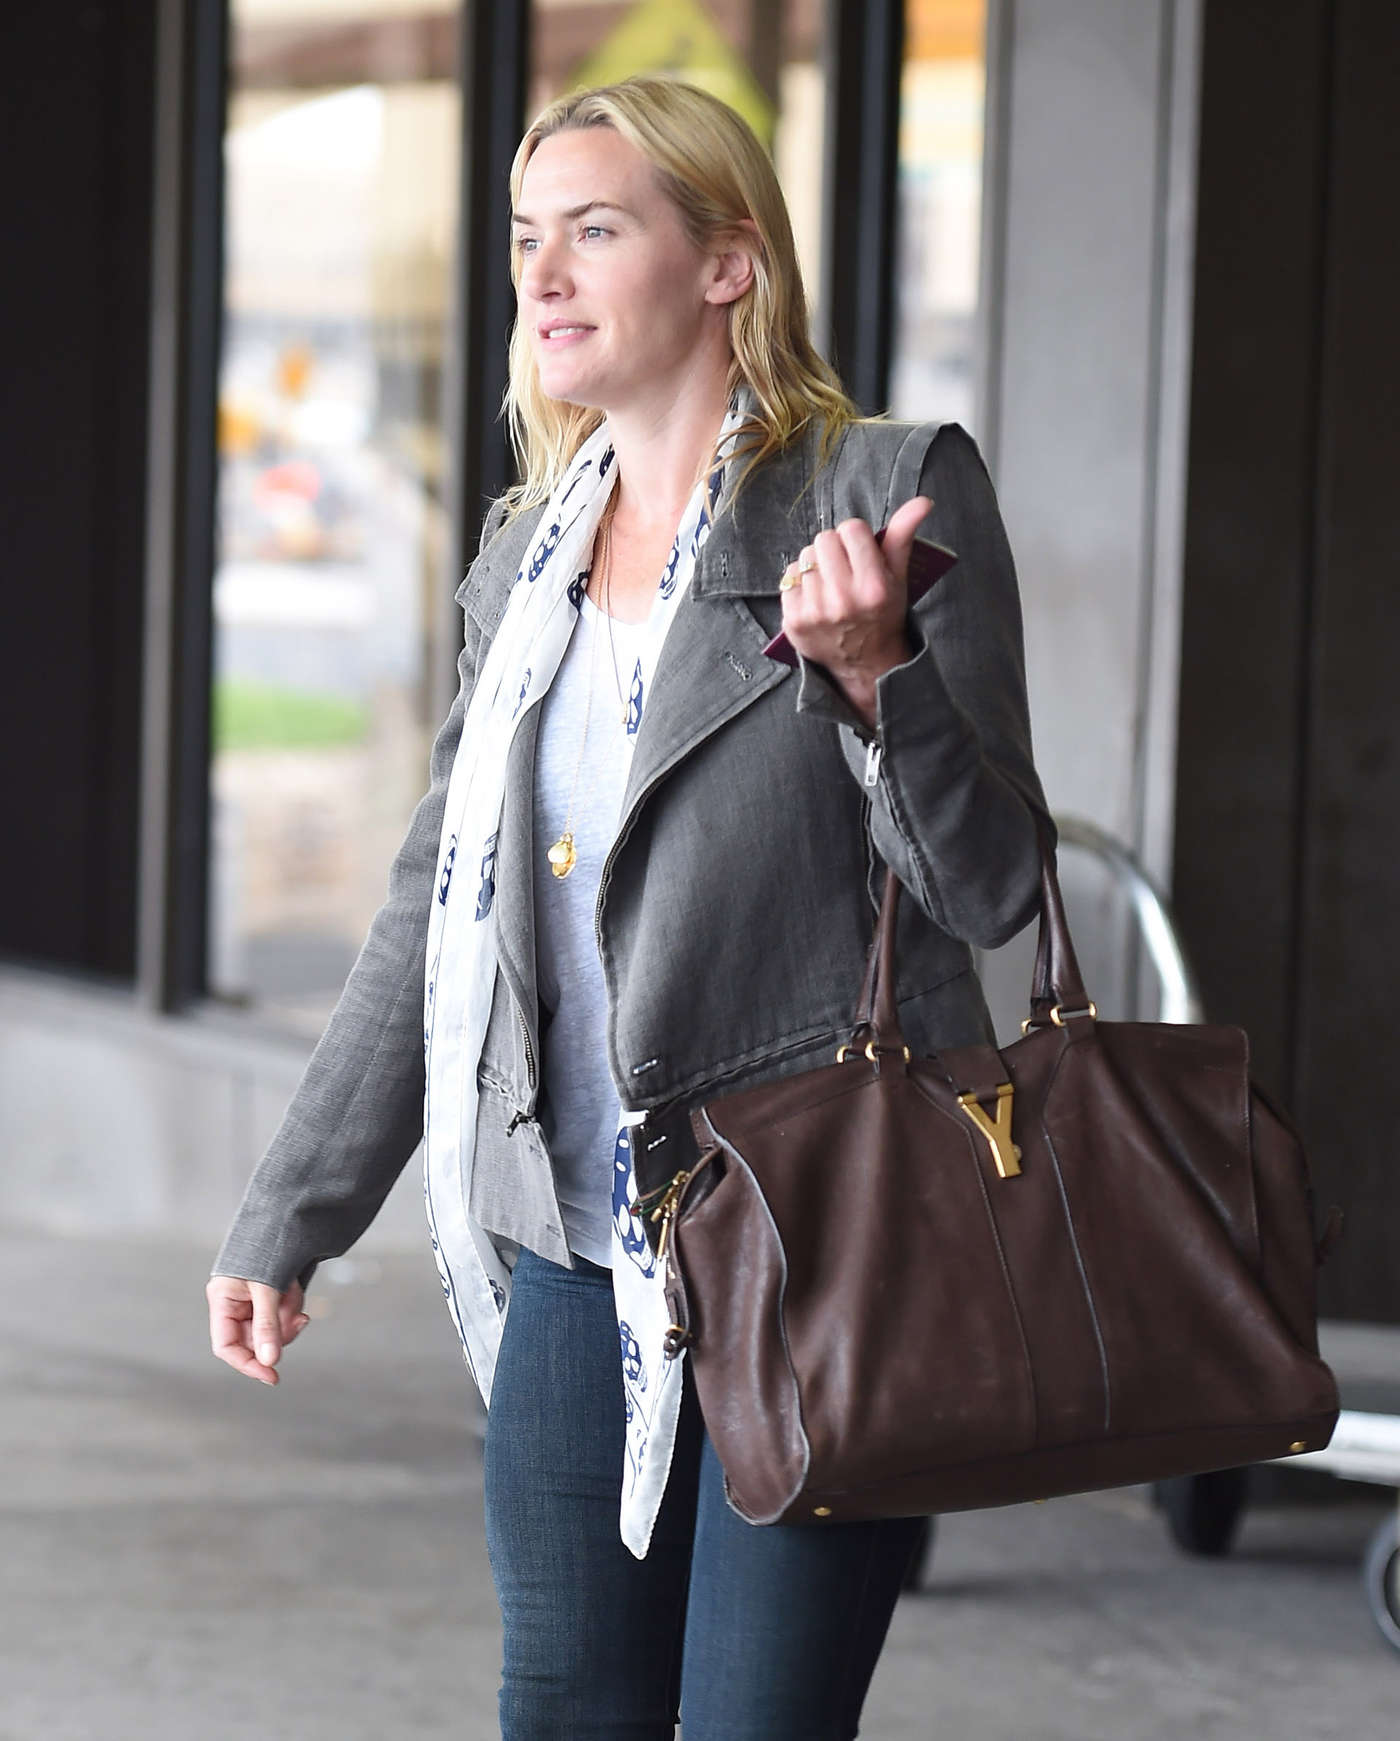 Kate Winslet in Jeans at JFK airport in NYC